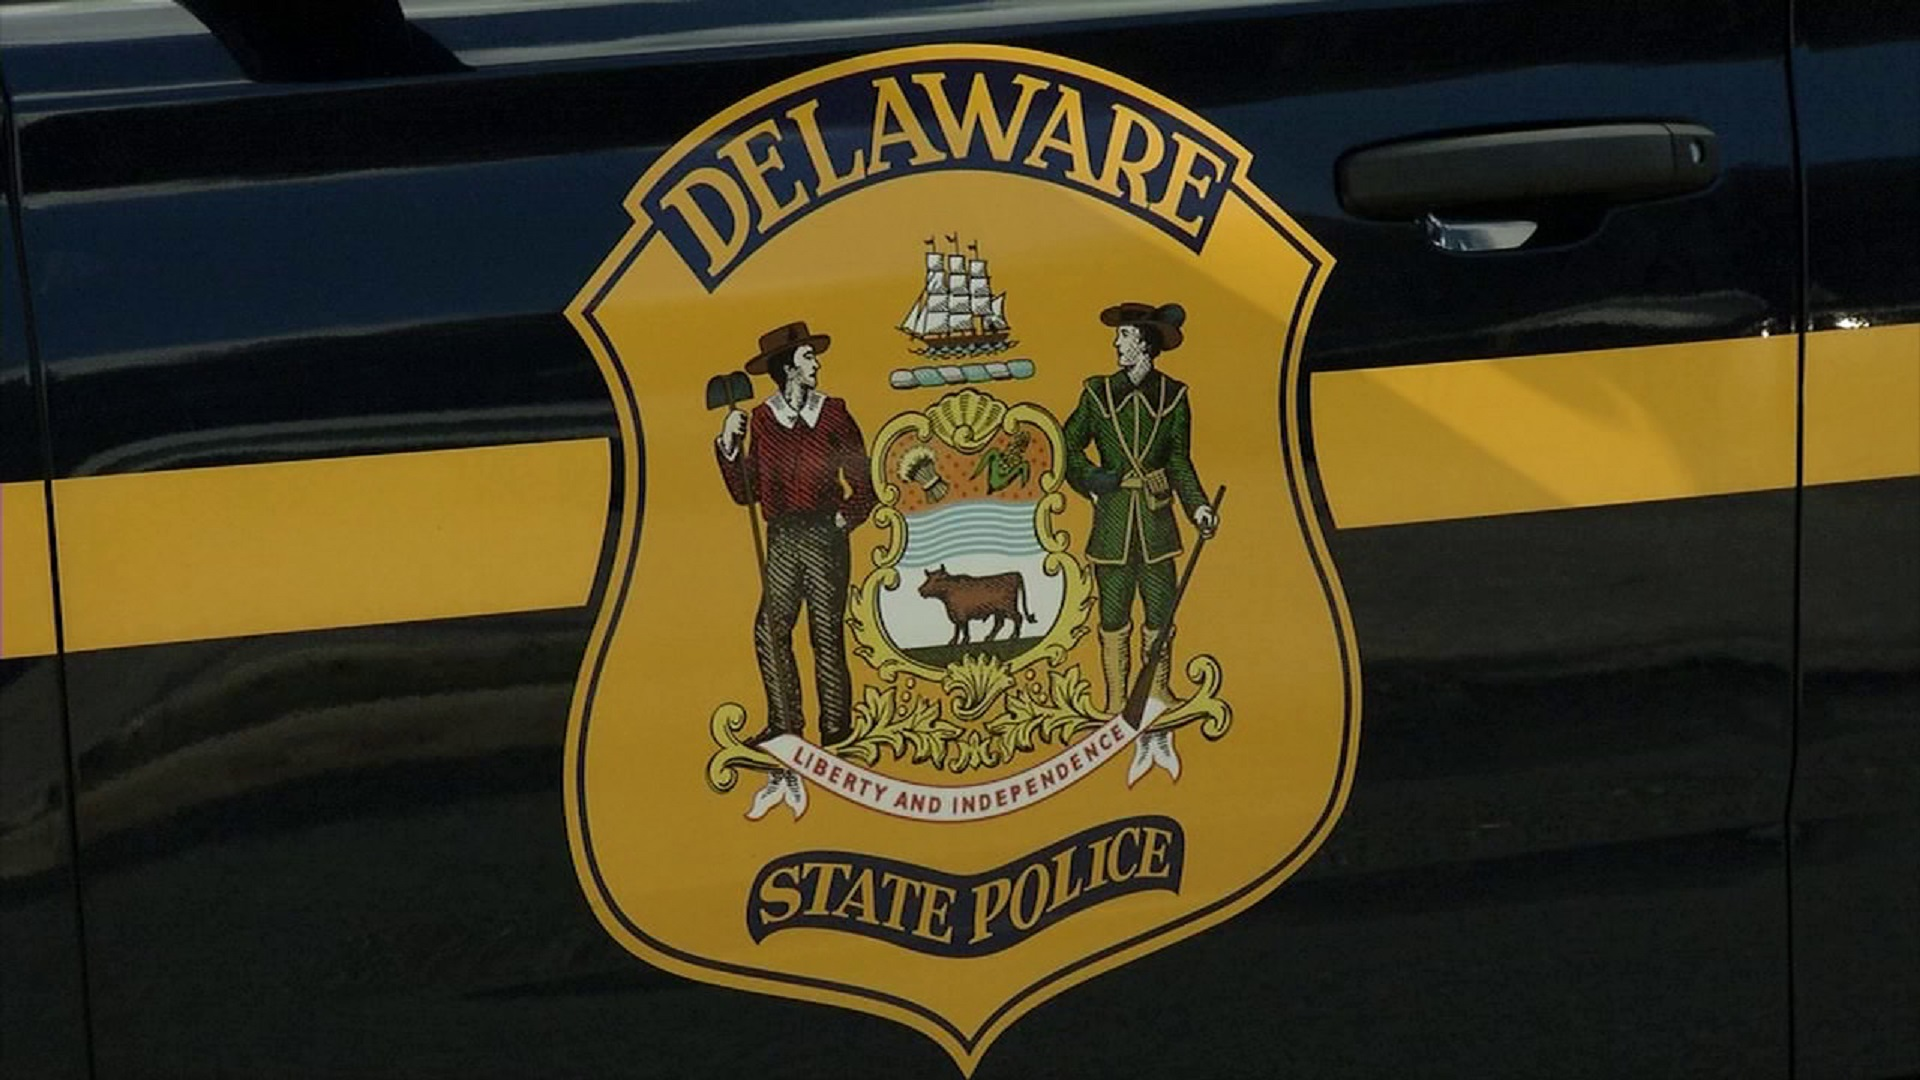 Authorities investigating fatal shooting by Delaware trooper